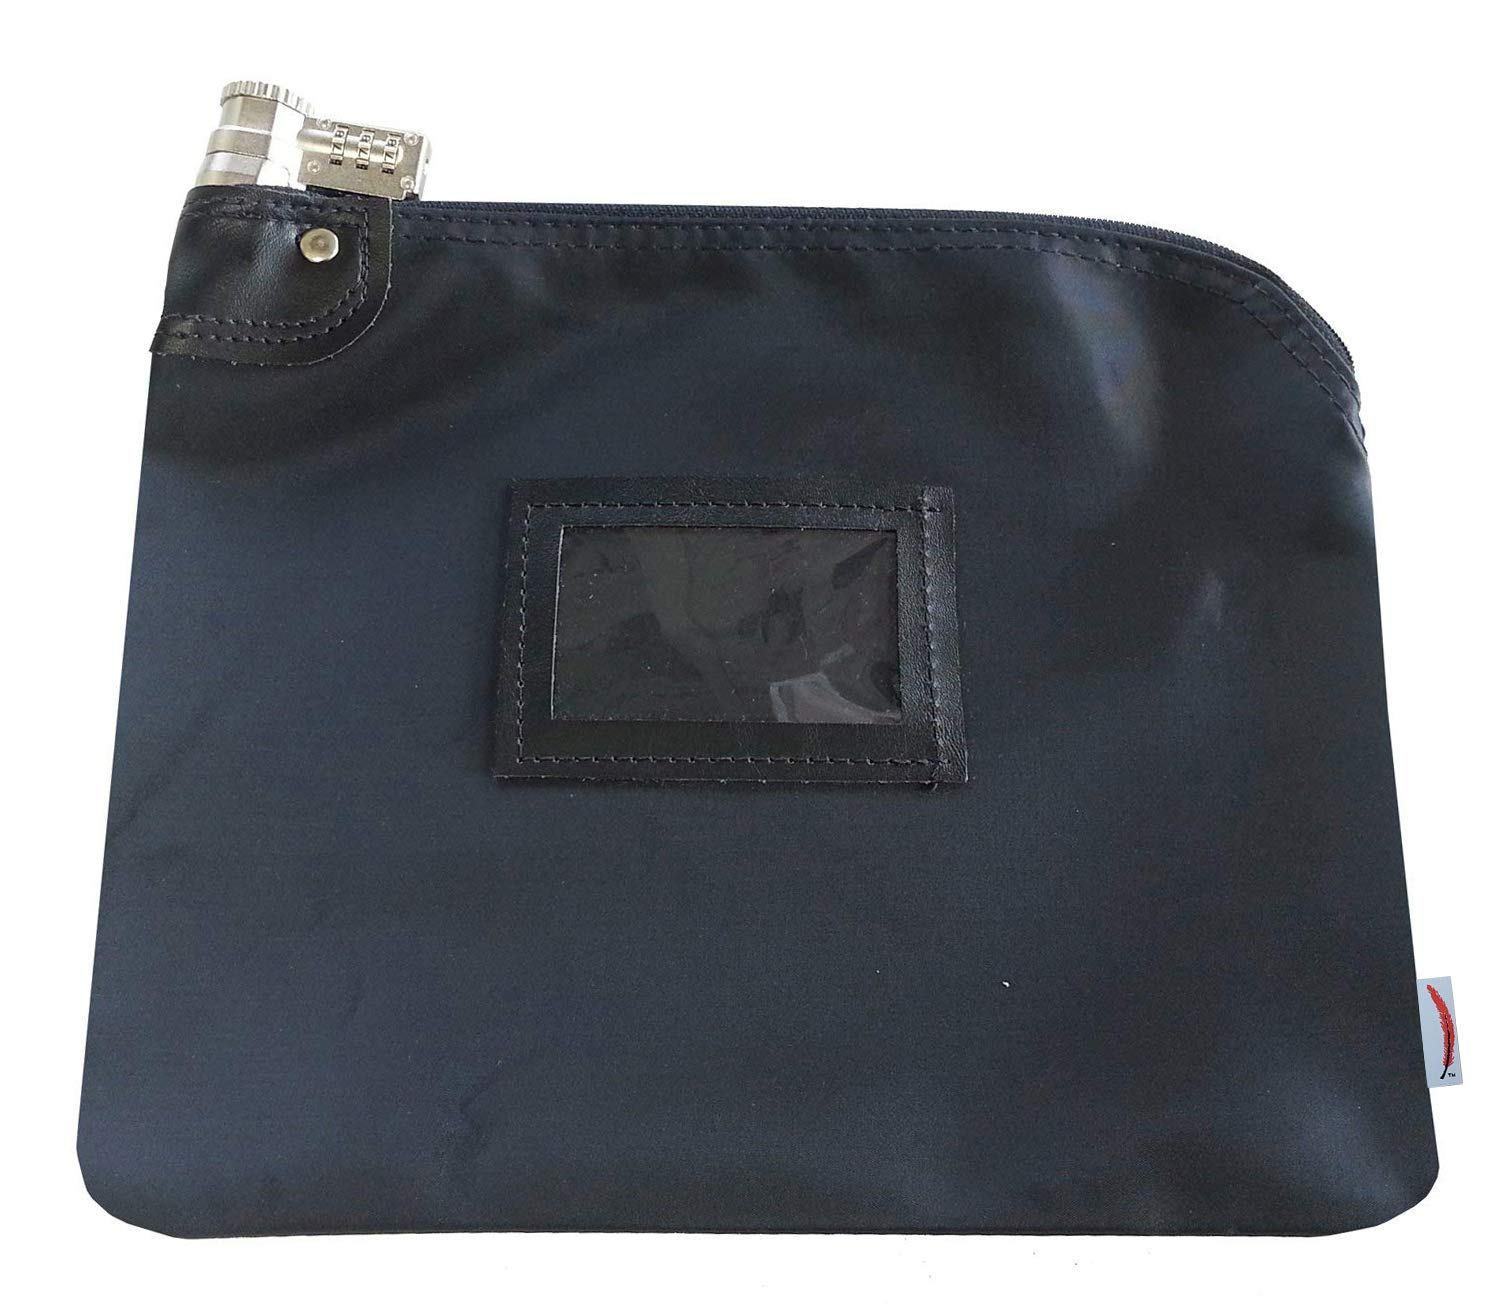 Locking Bank Bag Laminated Nylon Combination Keyed Security System (Navy Blue) by Cardinal bag supplies